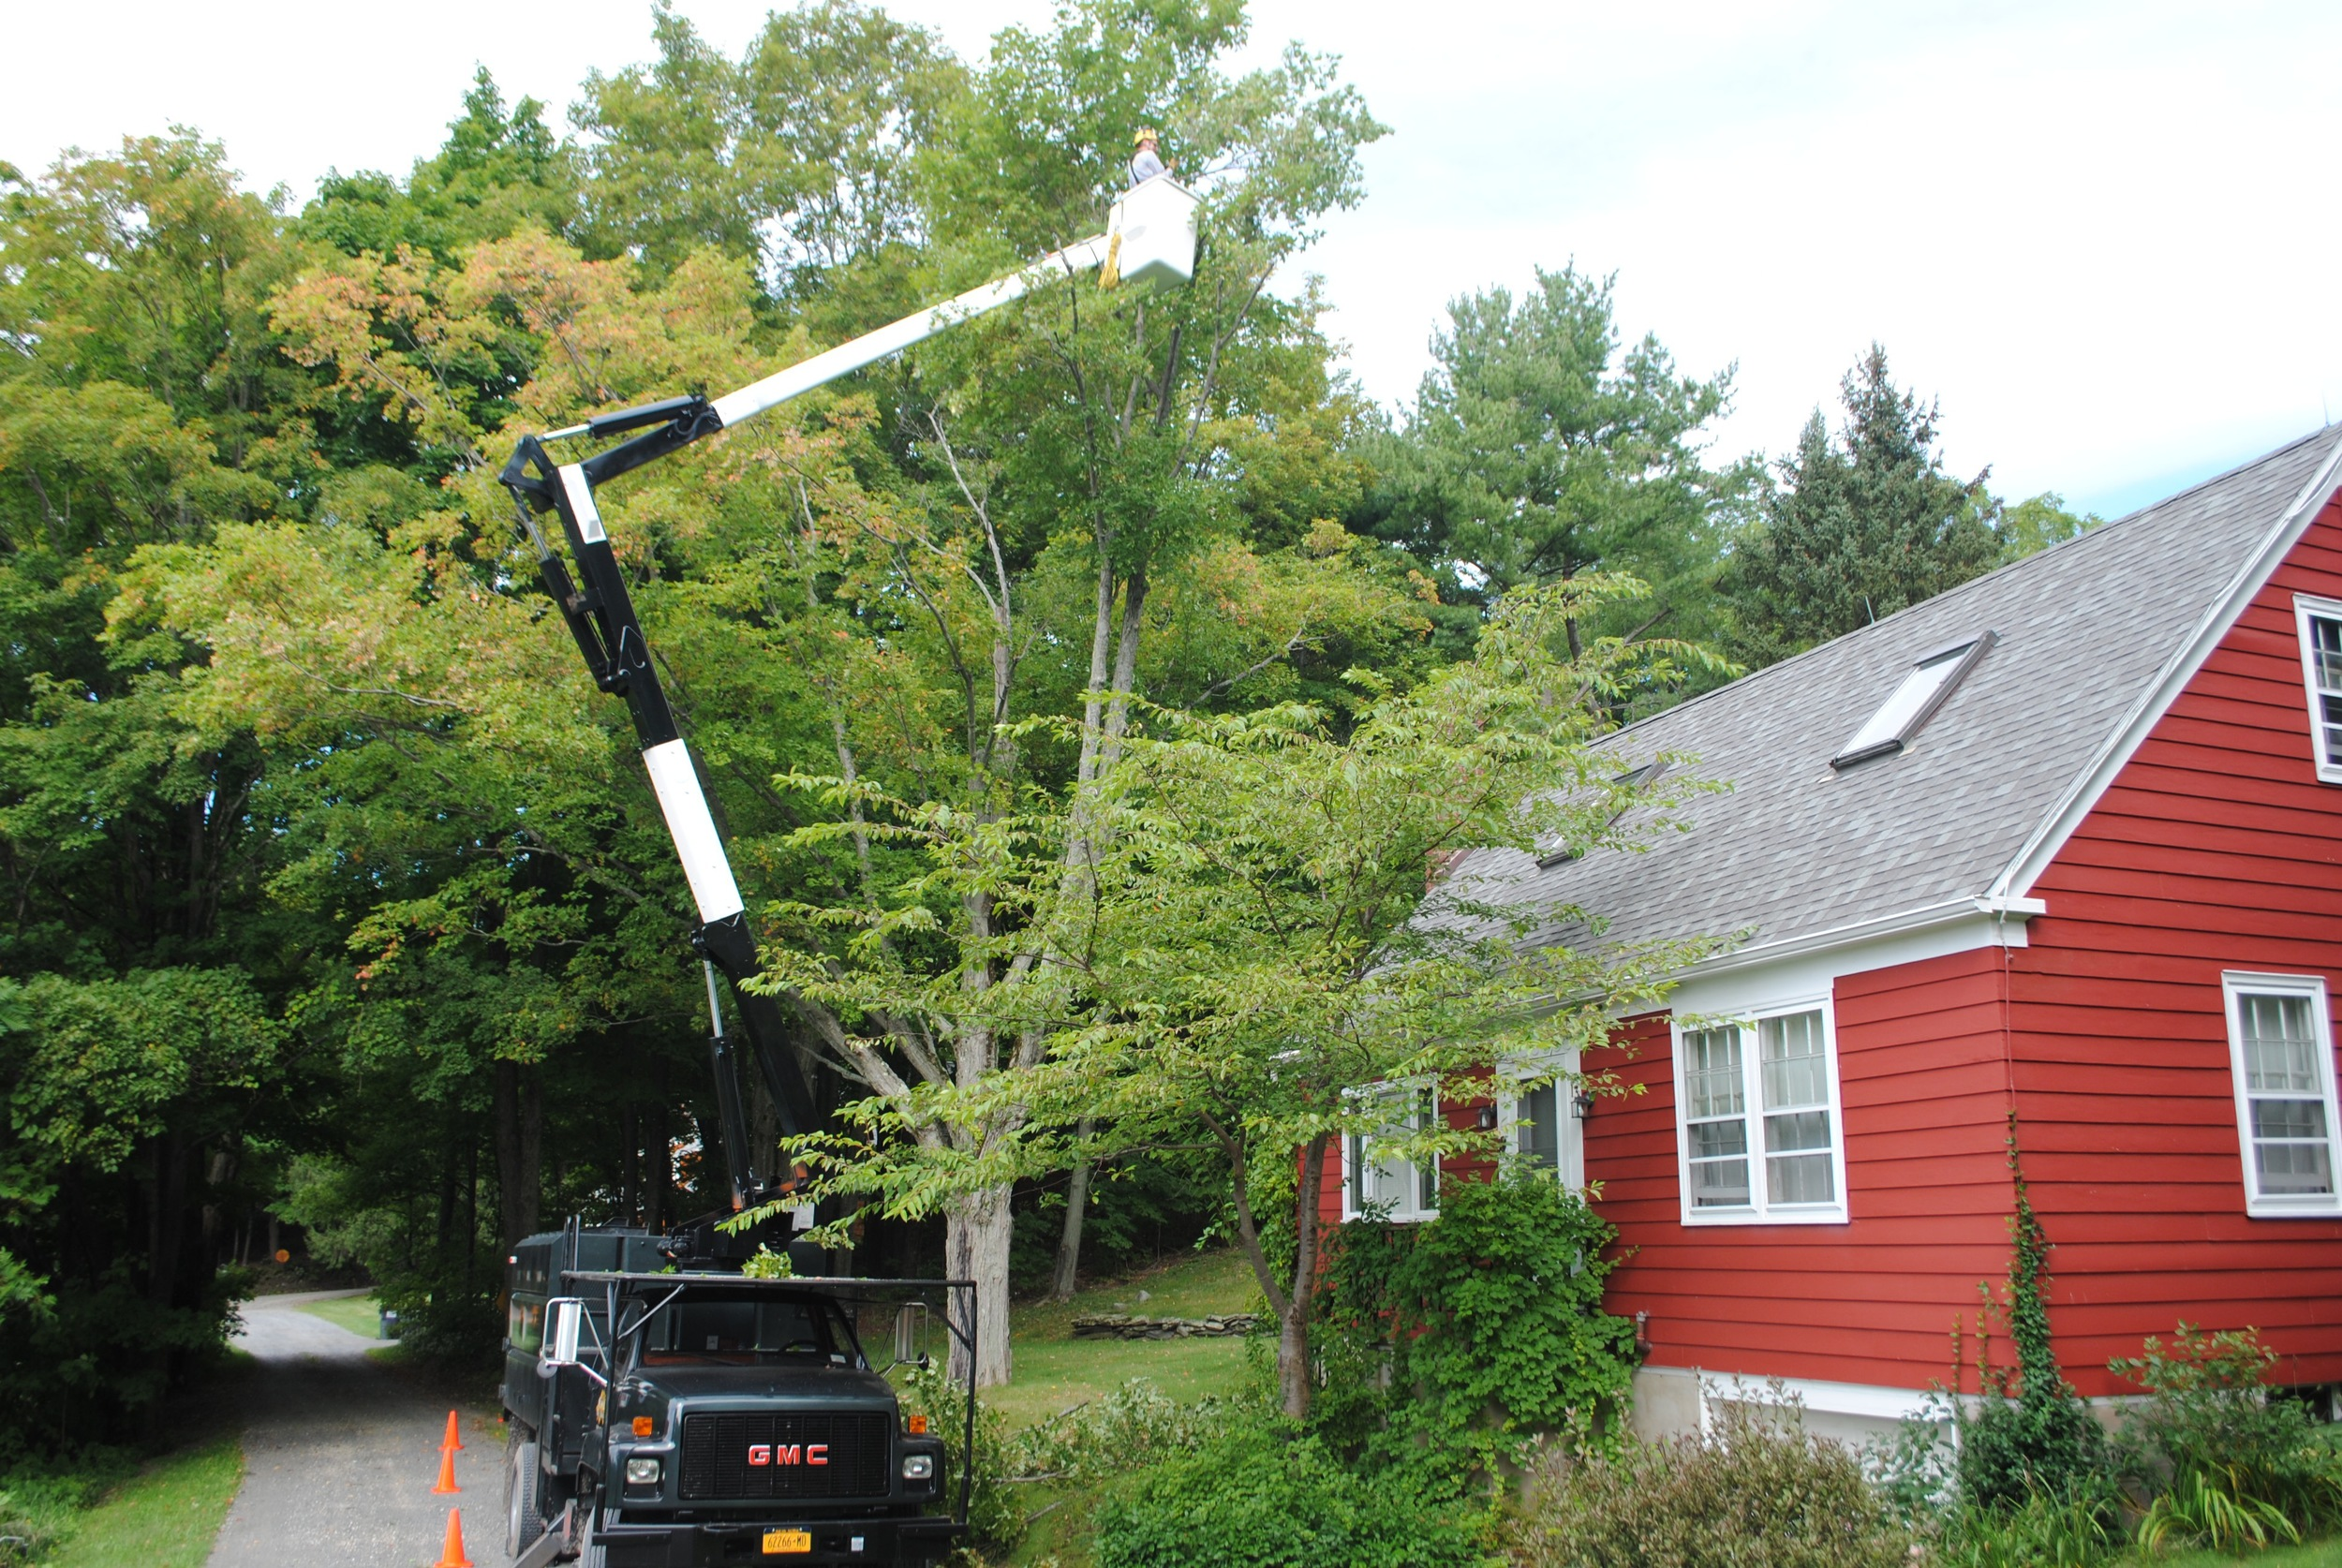 Working around a house can be done safely and efficiently with the use of our 60' bucket truck.